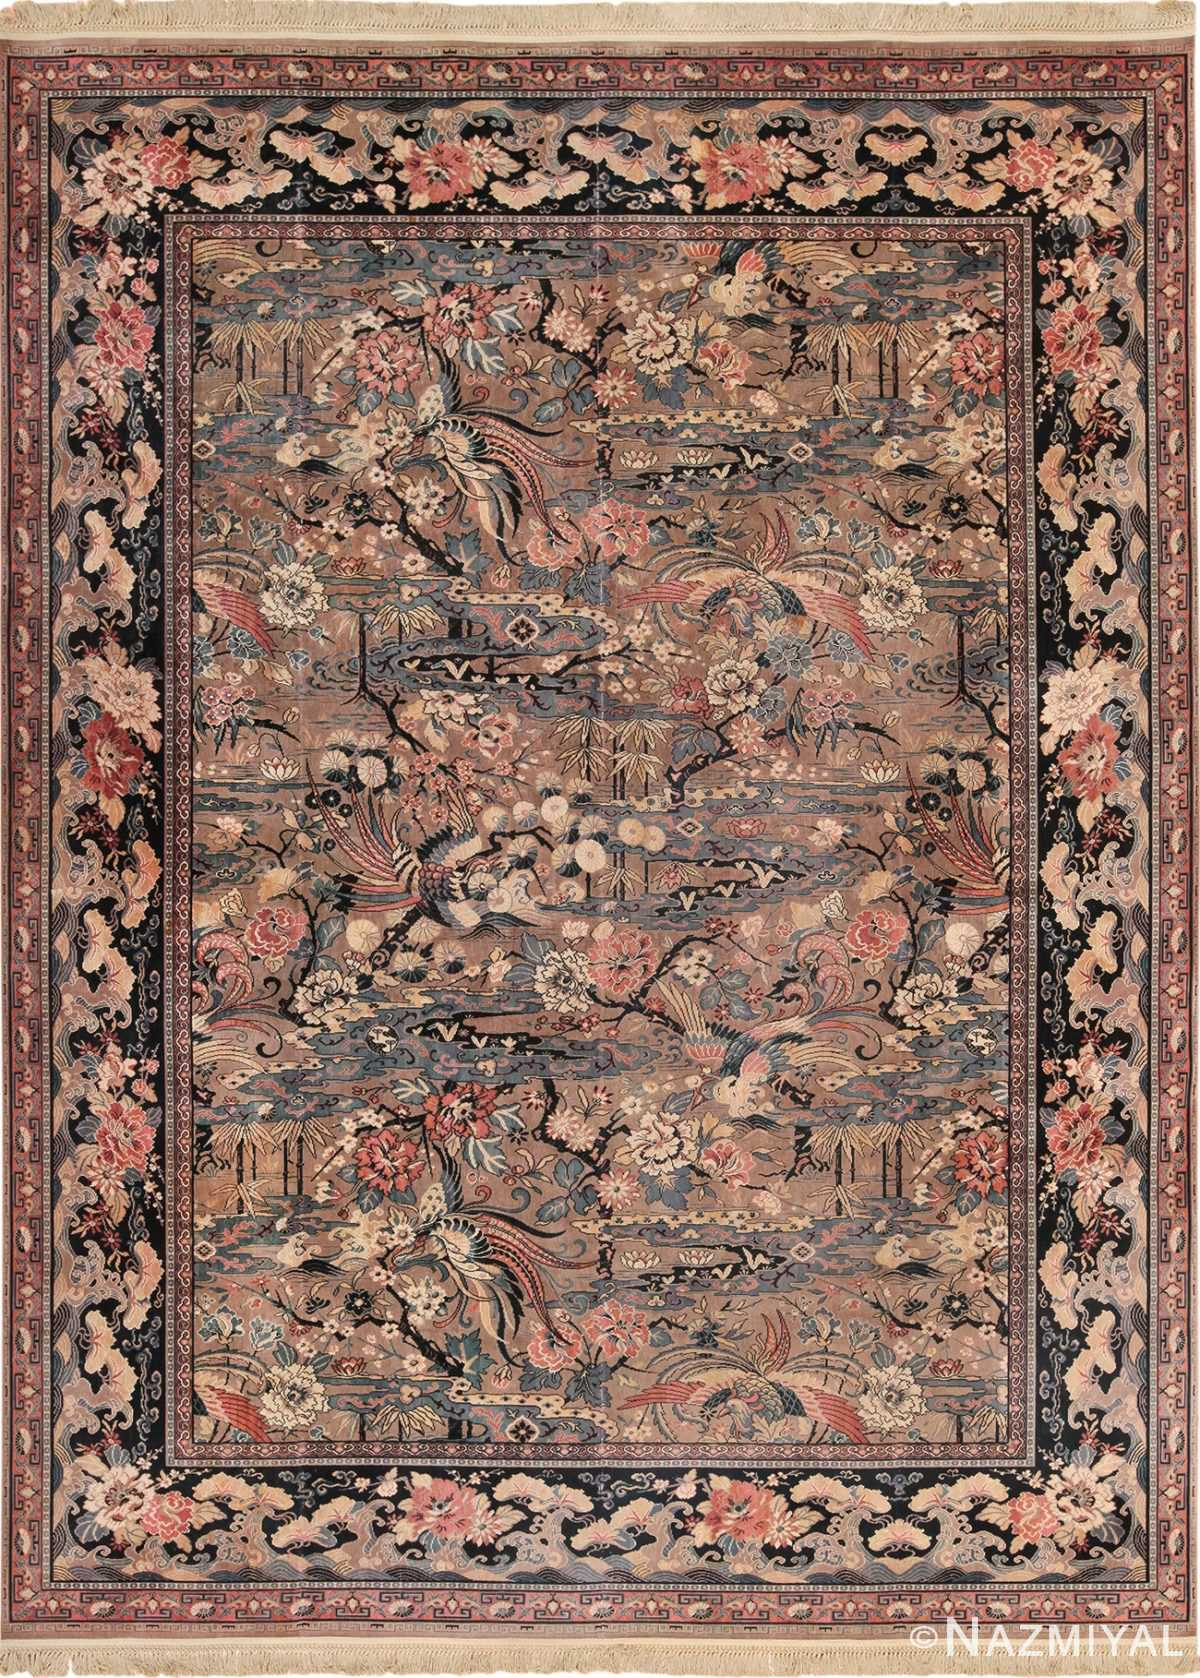 Vintage Birds of Paradise English Wilton Rug 49815 - Nazmiyal